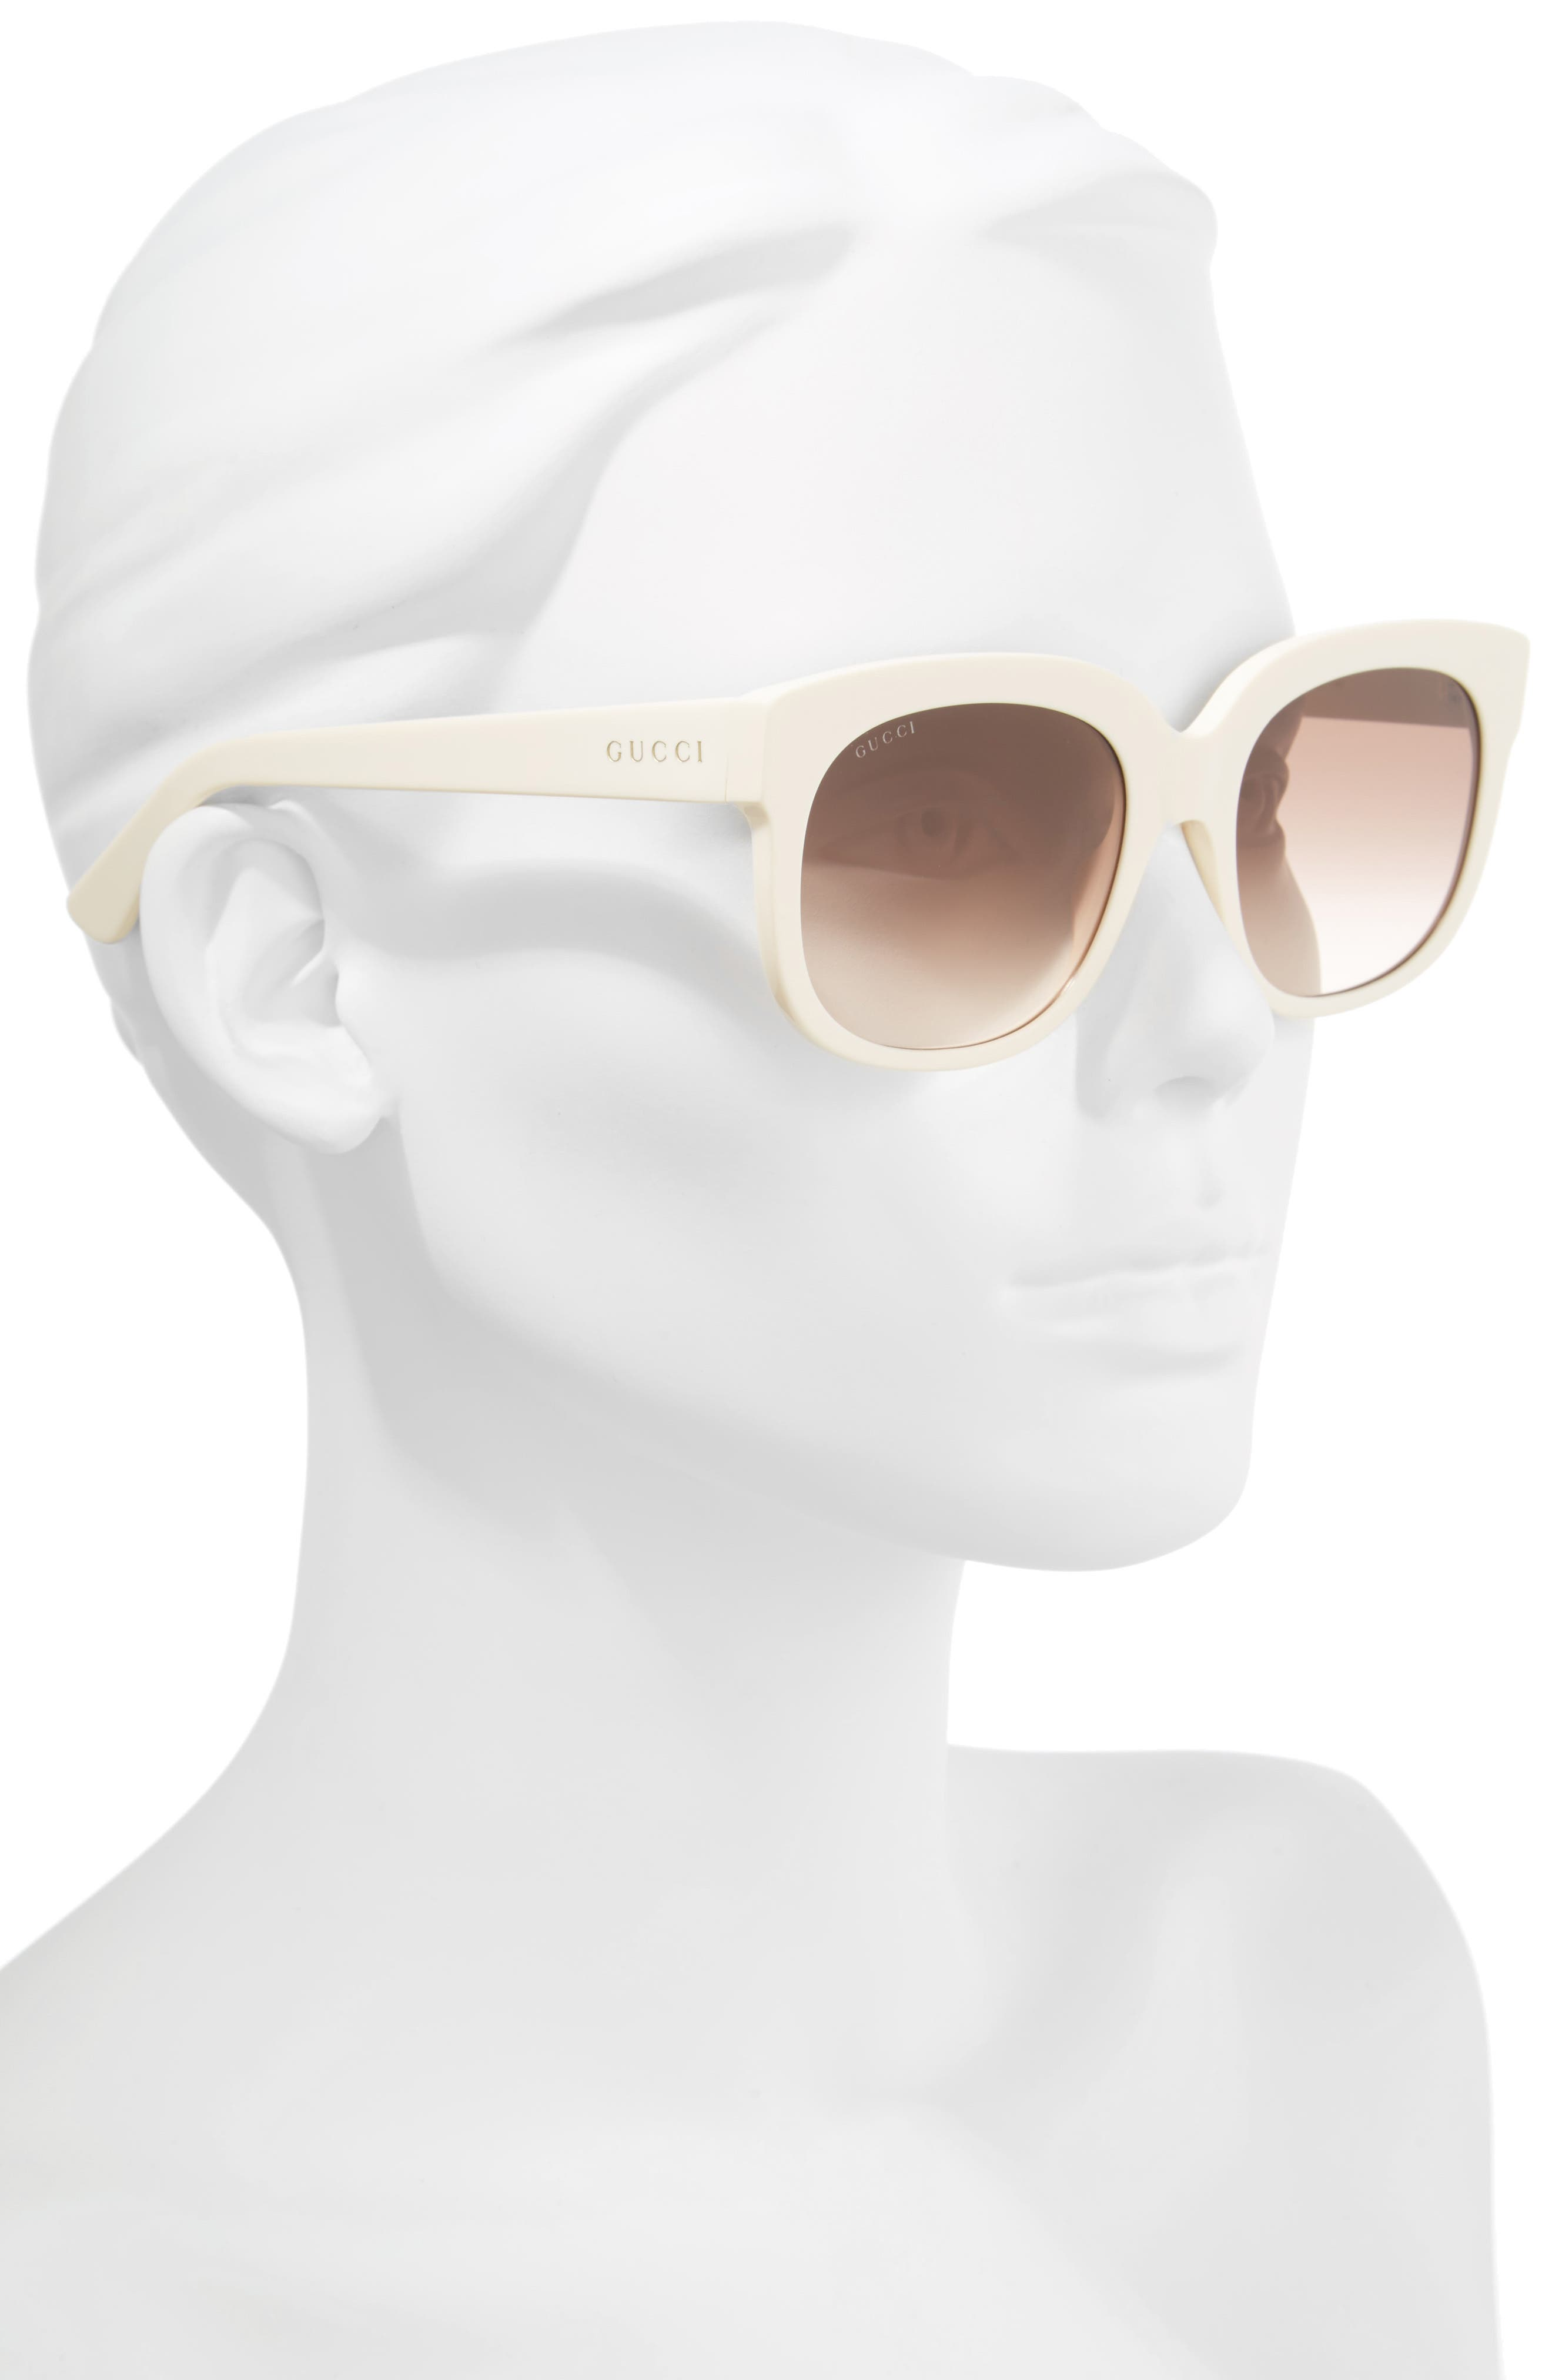 56mm Gradient Cat Eye Sunglasses,                             Alternate thumbnail 2, color,                             IVORY/ BROWN/ PINK